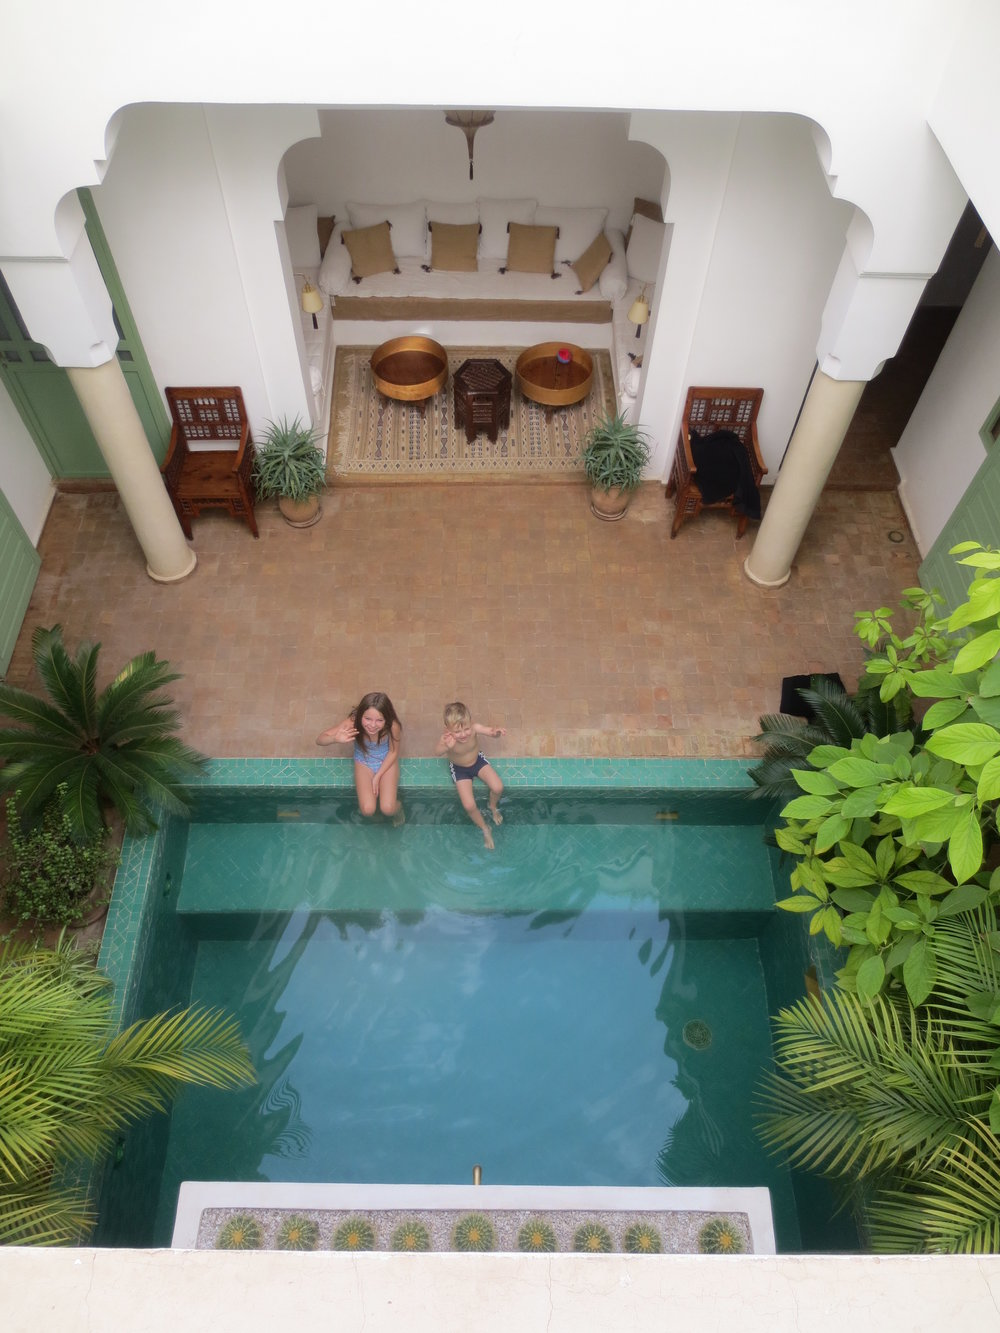 The Riad in Marrakesh where Tracey and her family were immersed in the local culture.